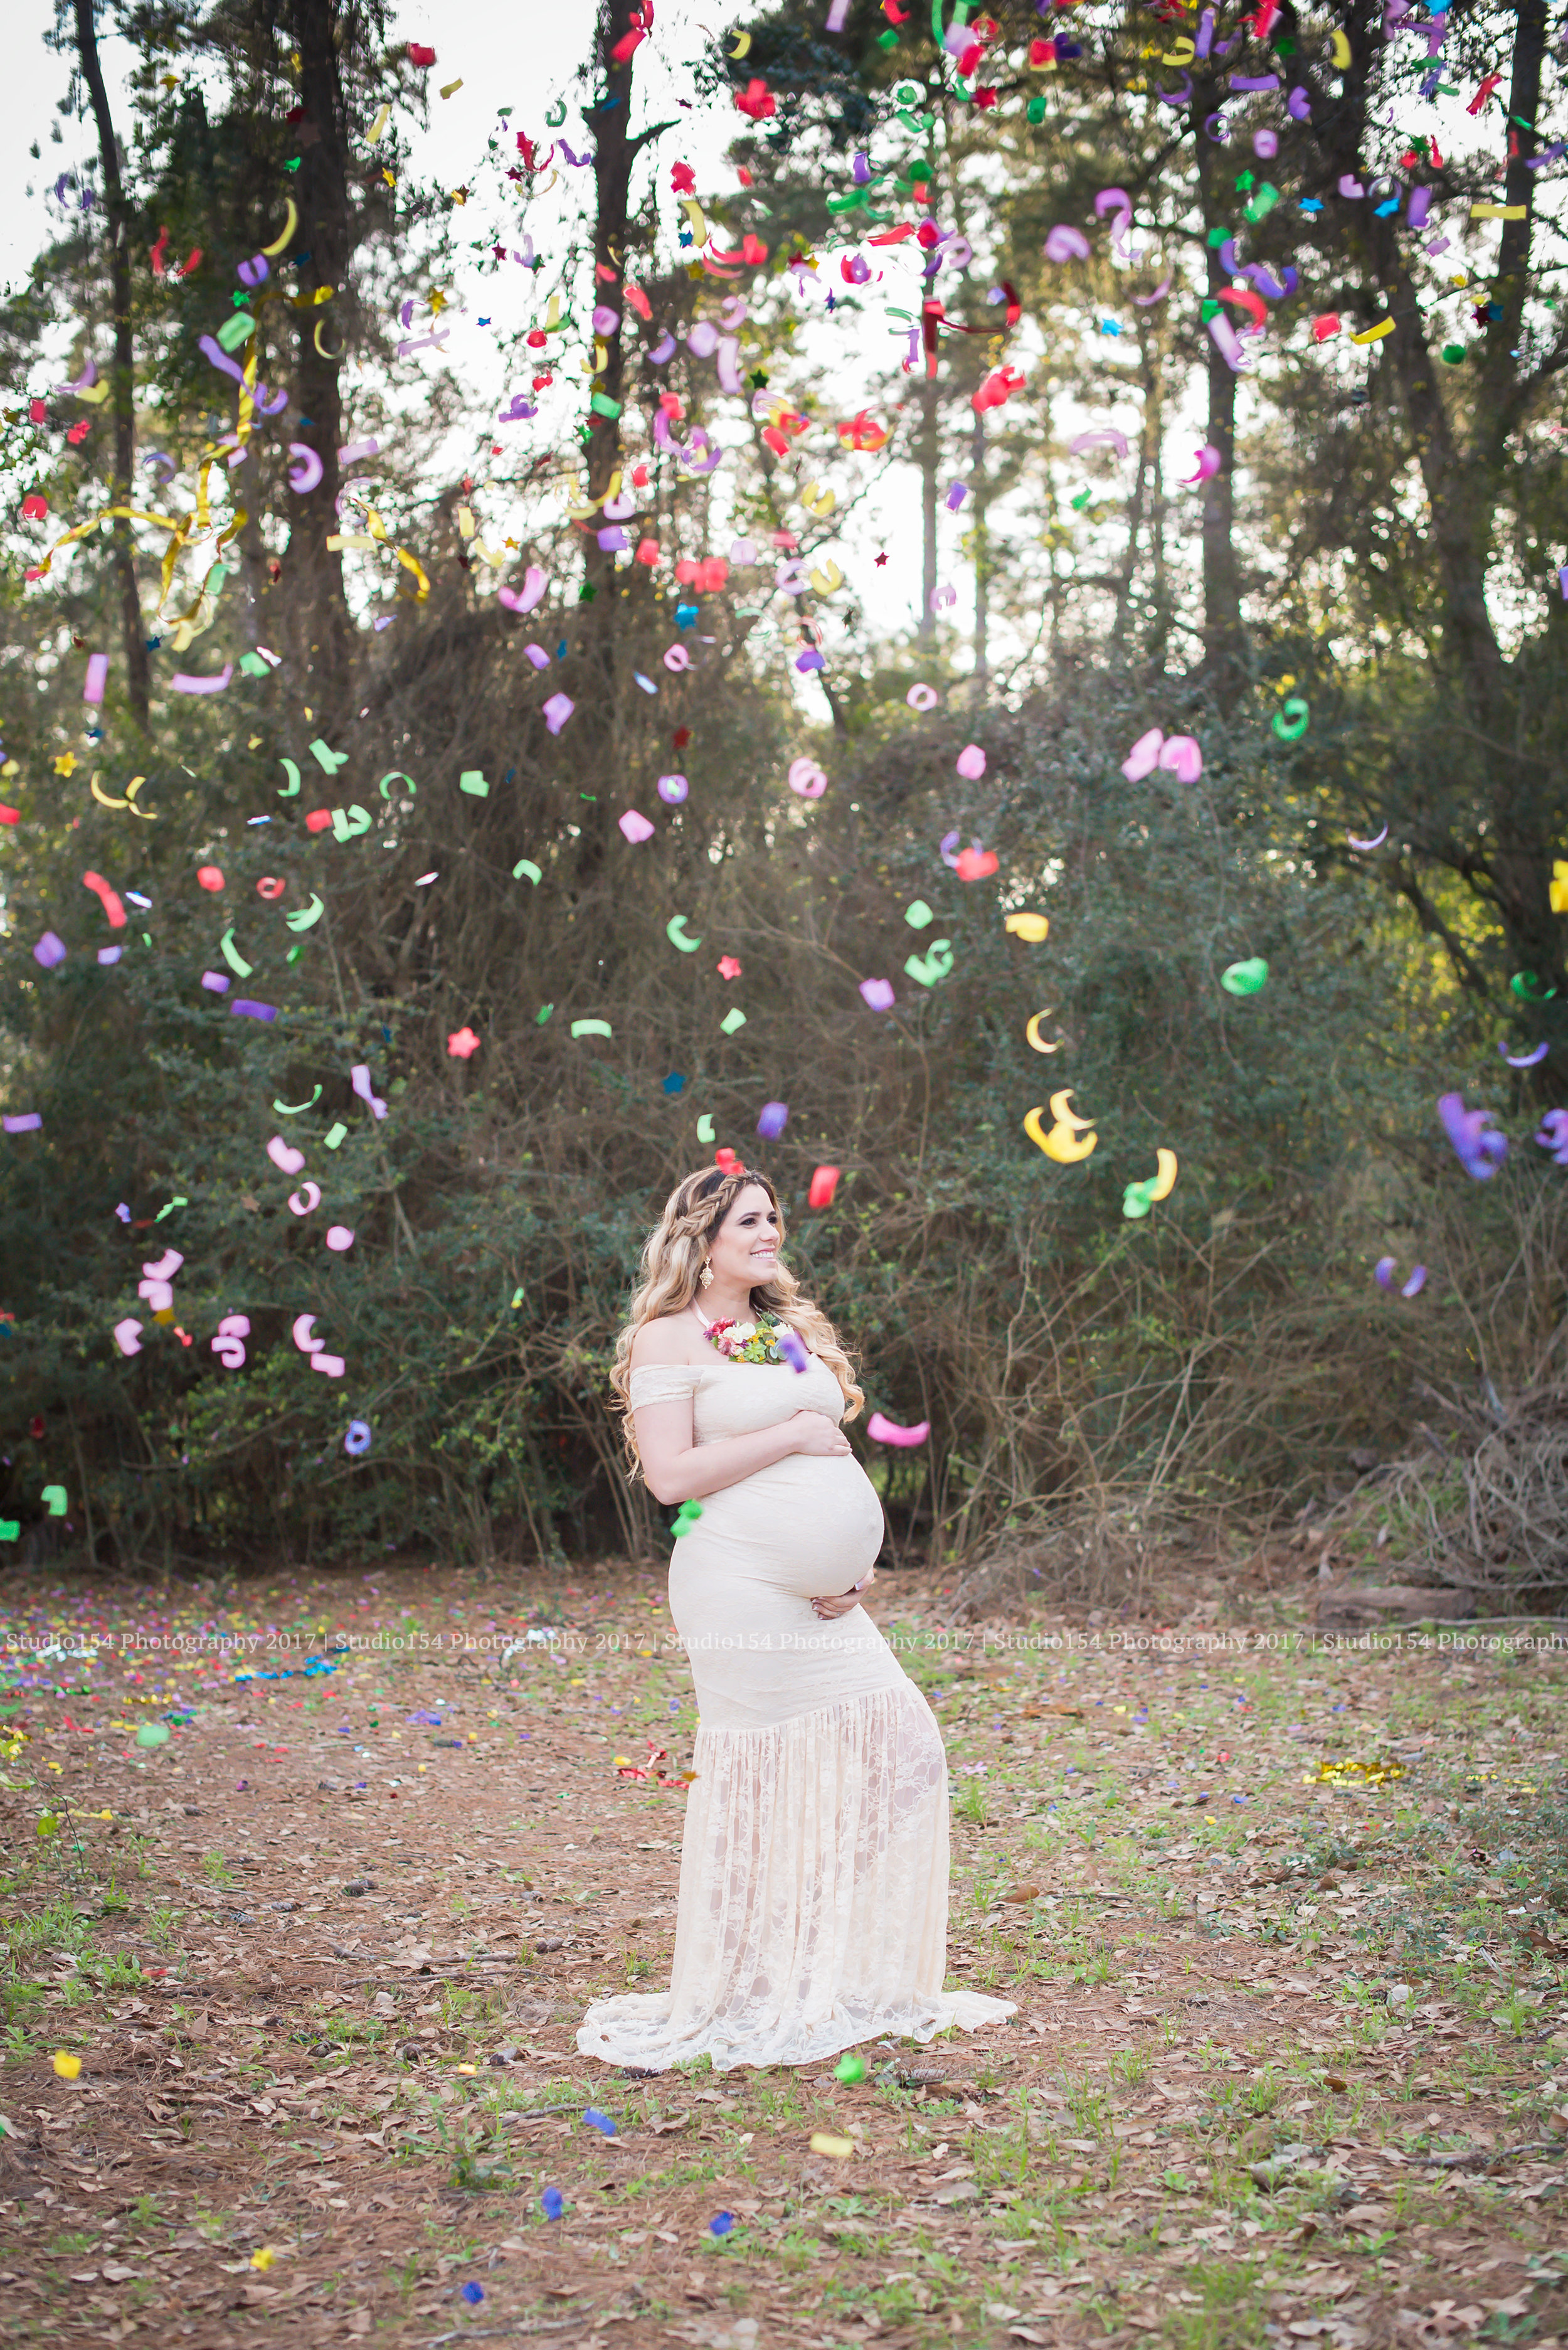 1March-750_7270RainbowMaternityShoot-2.jpg